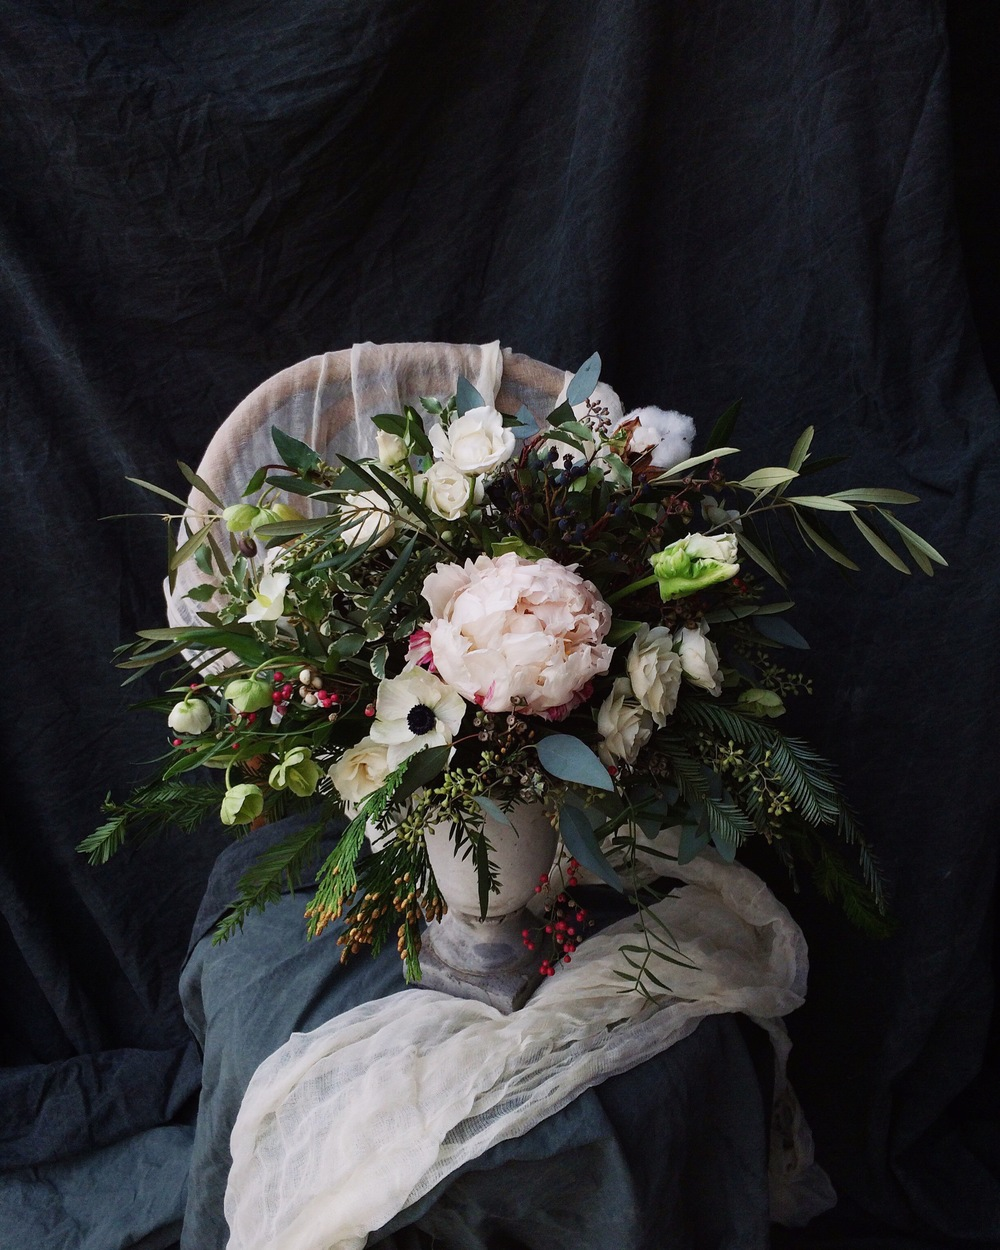 My finished bouquet, with moody styling.